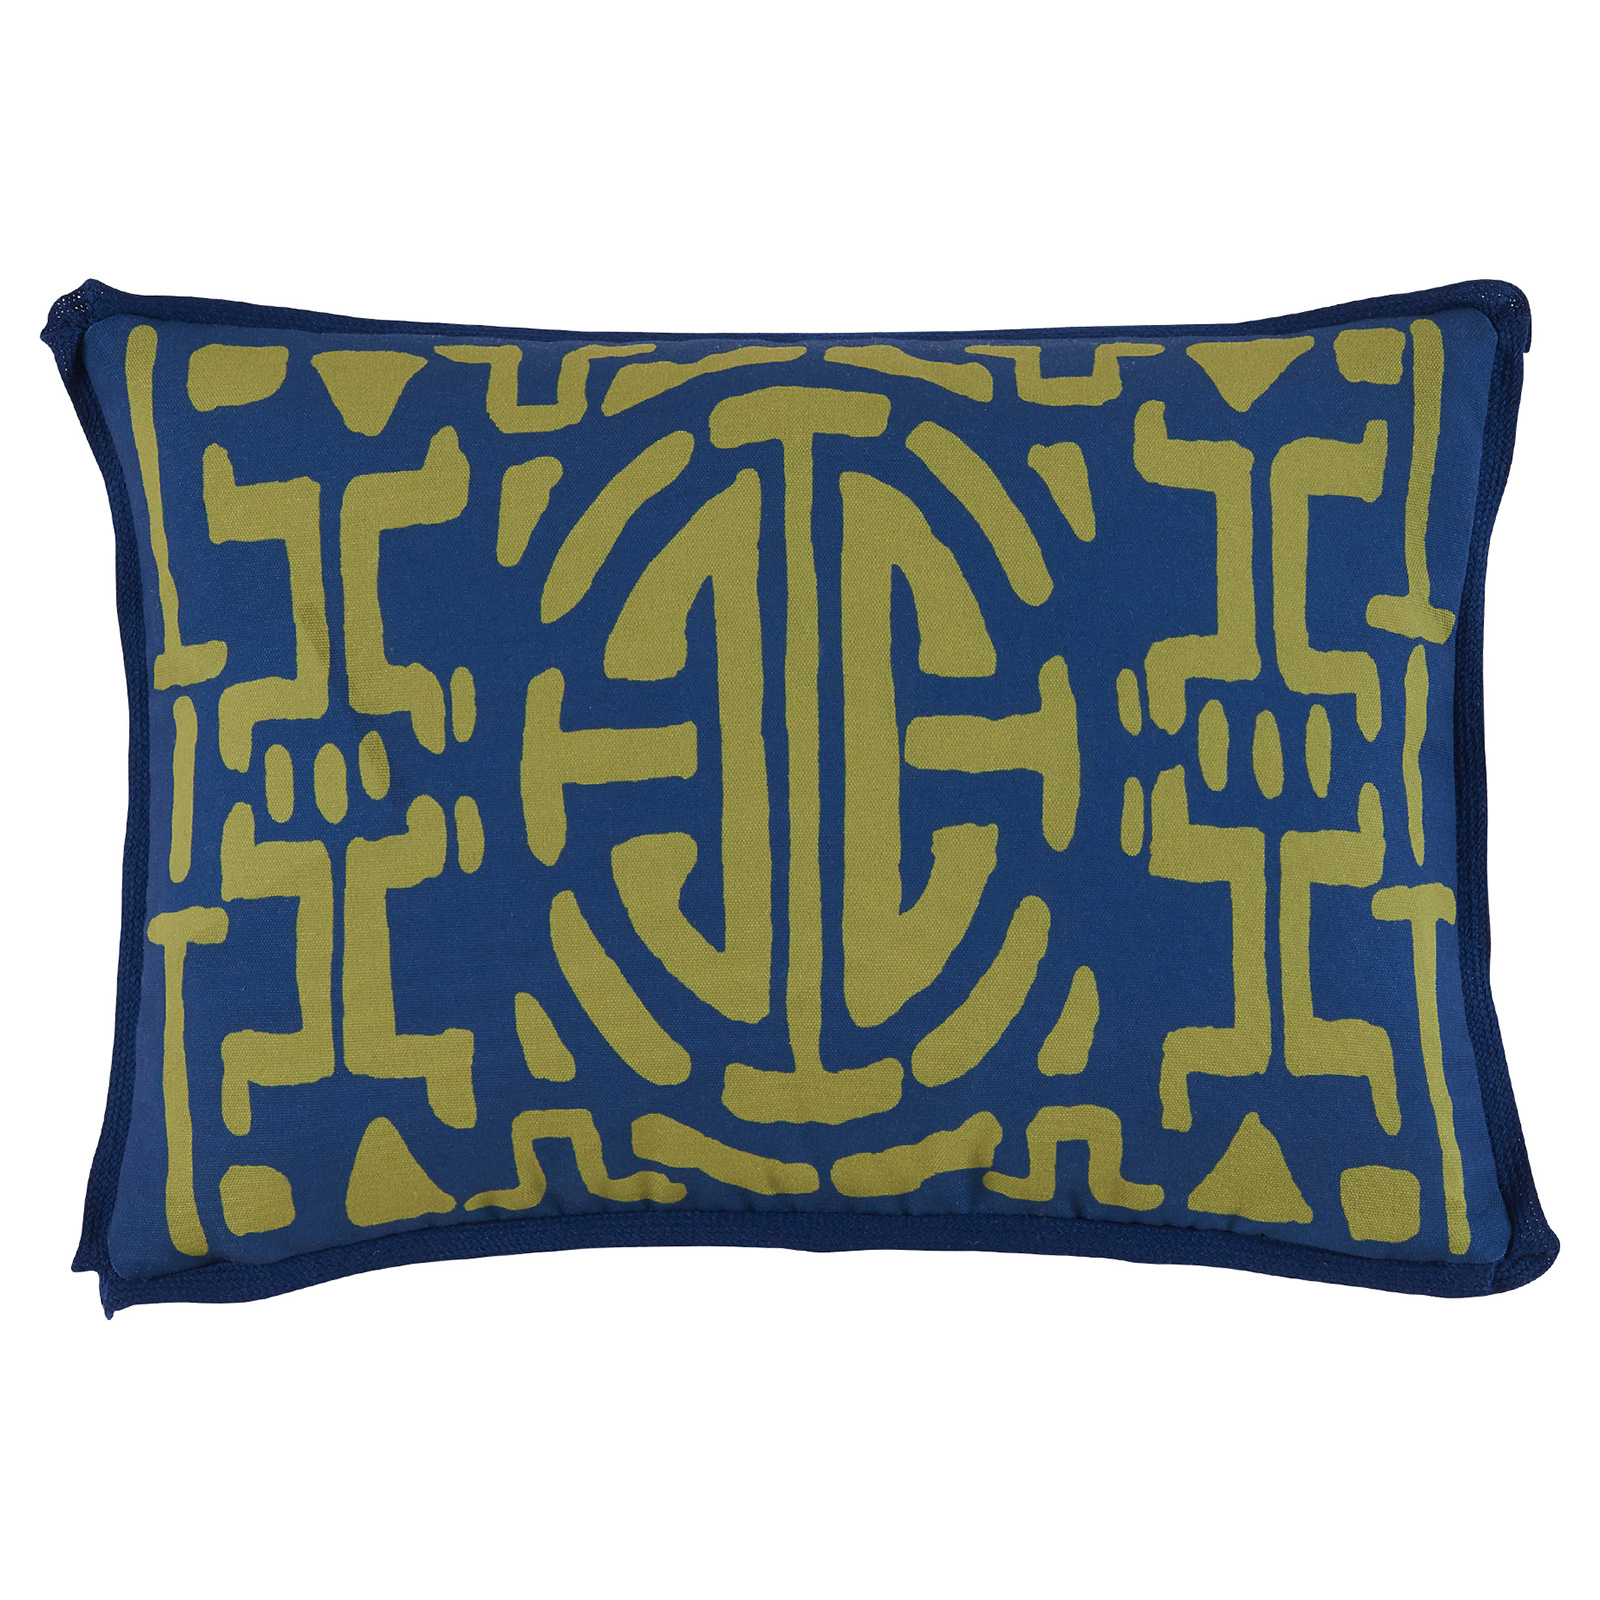 Nava Global Green Abstract Outdoor Navy Pillow - 13x19